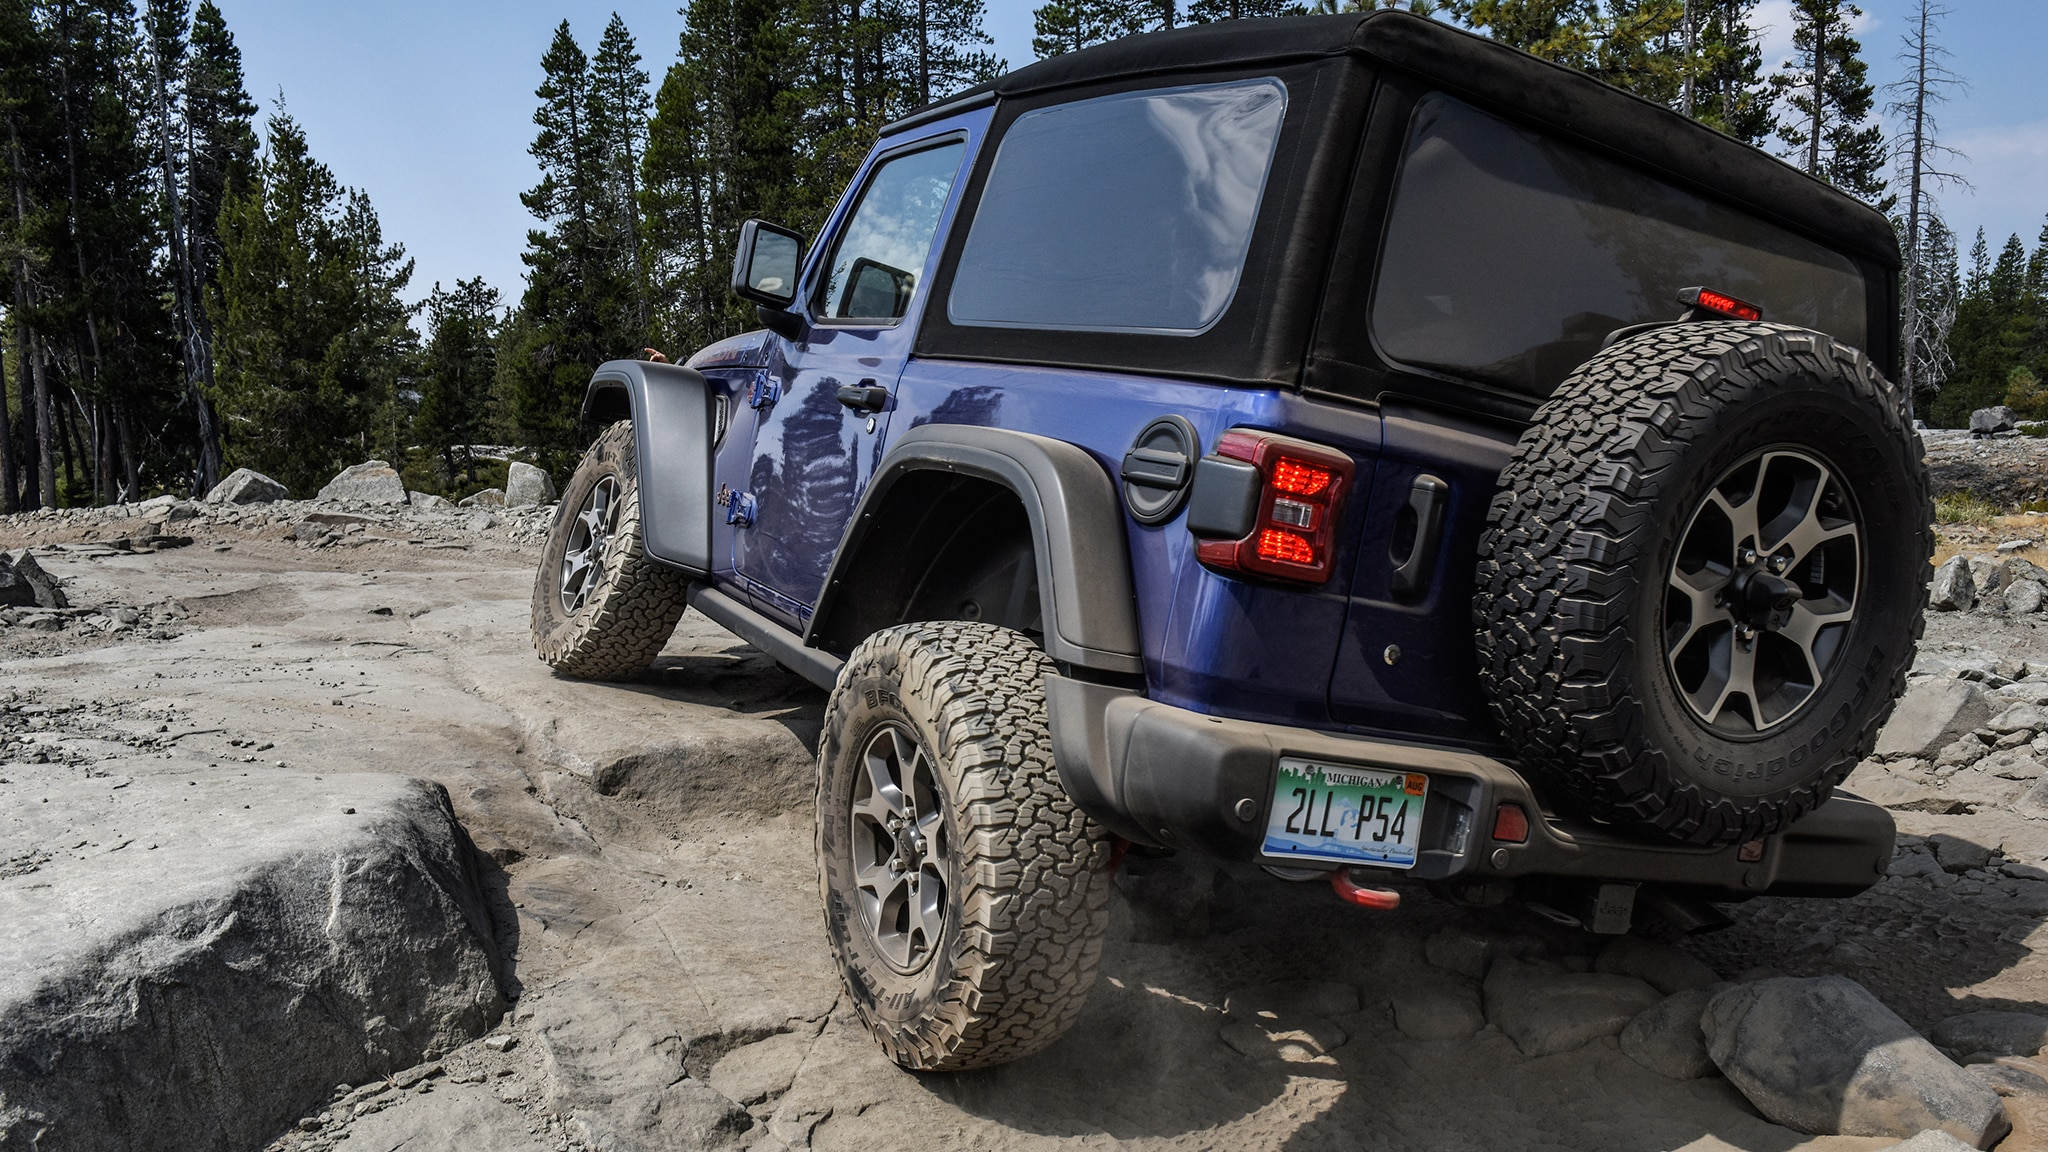 We Tackle the Rubicon Trail in a Jeep Wrangler Rubicon